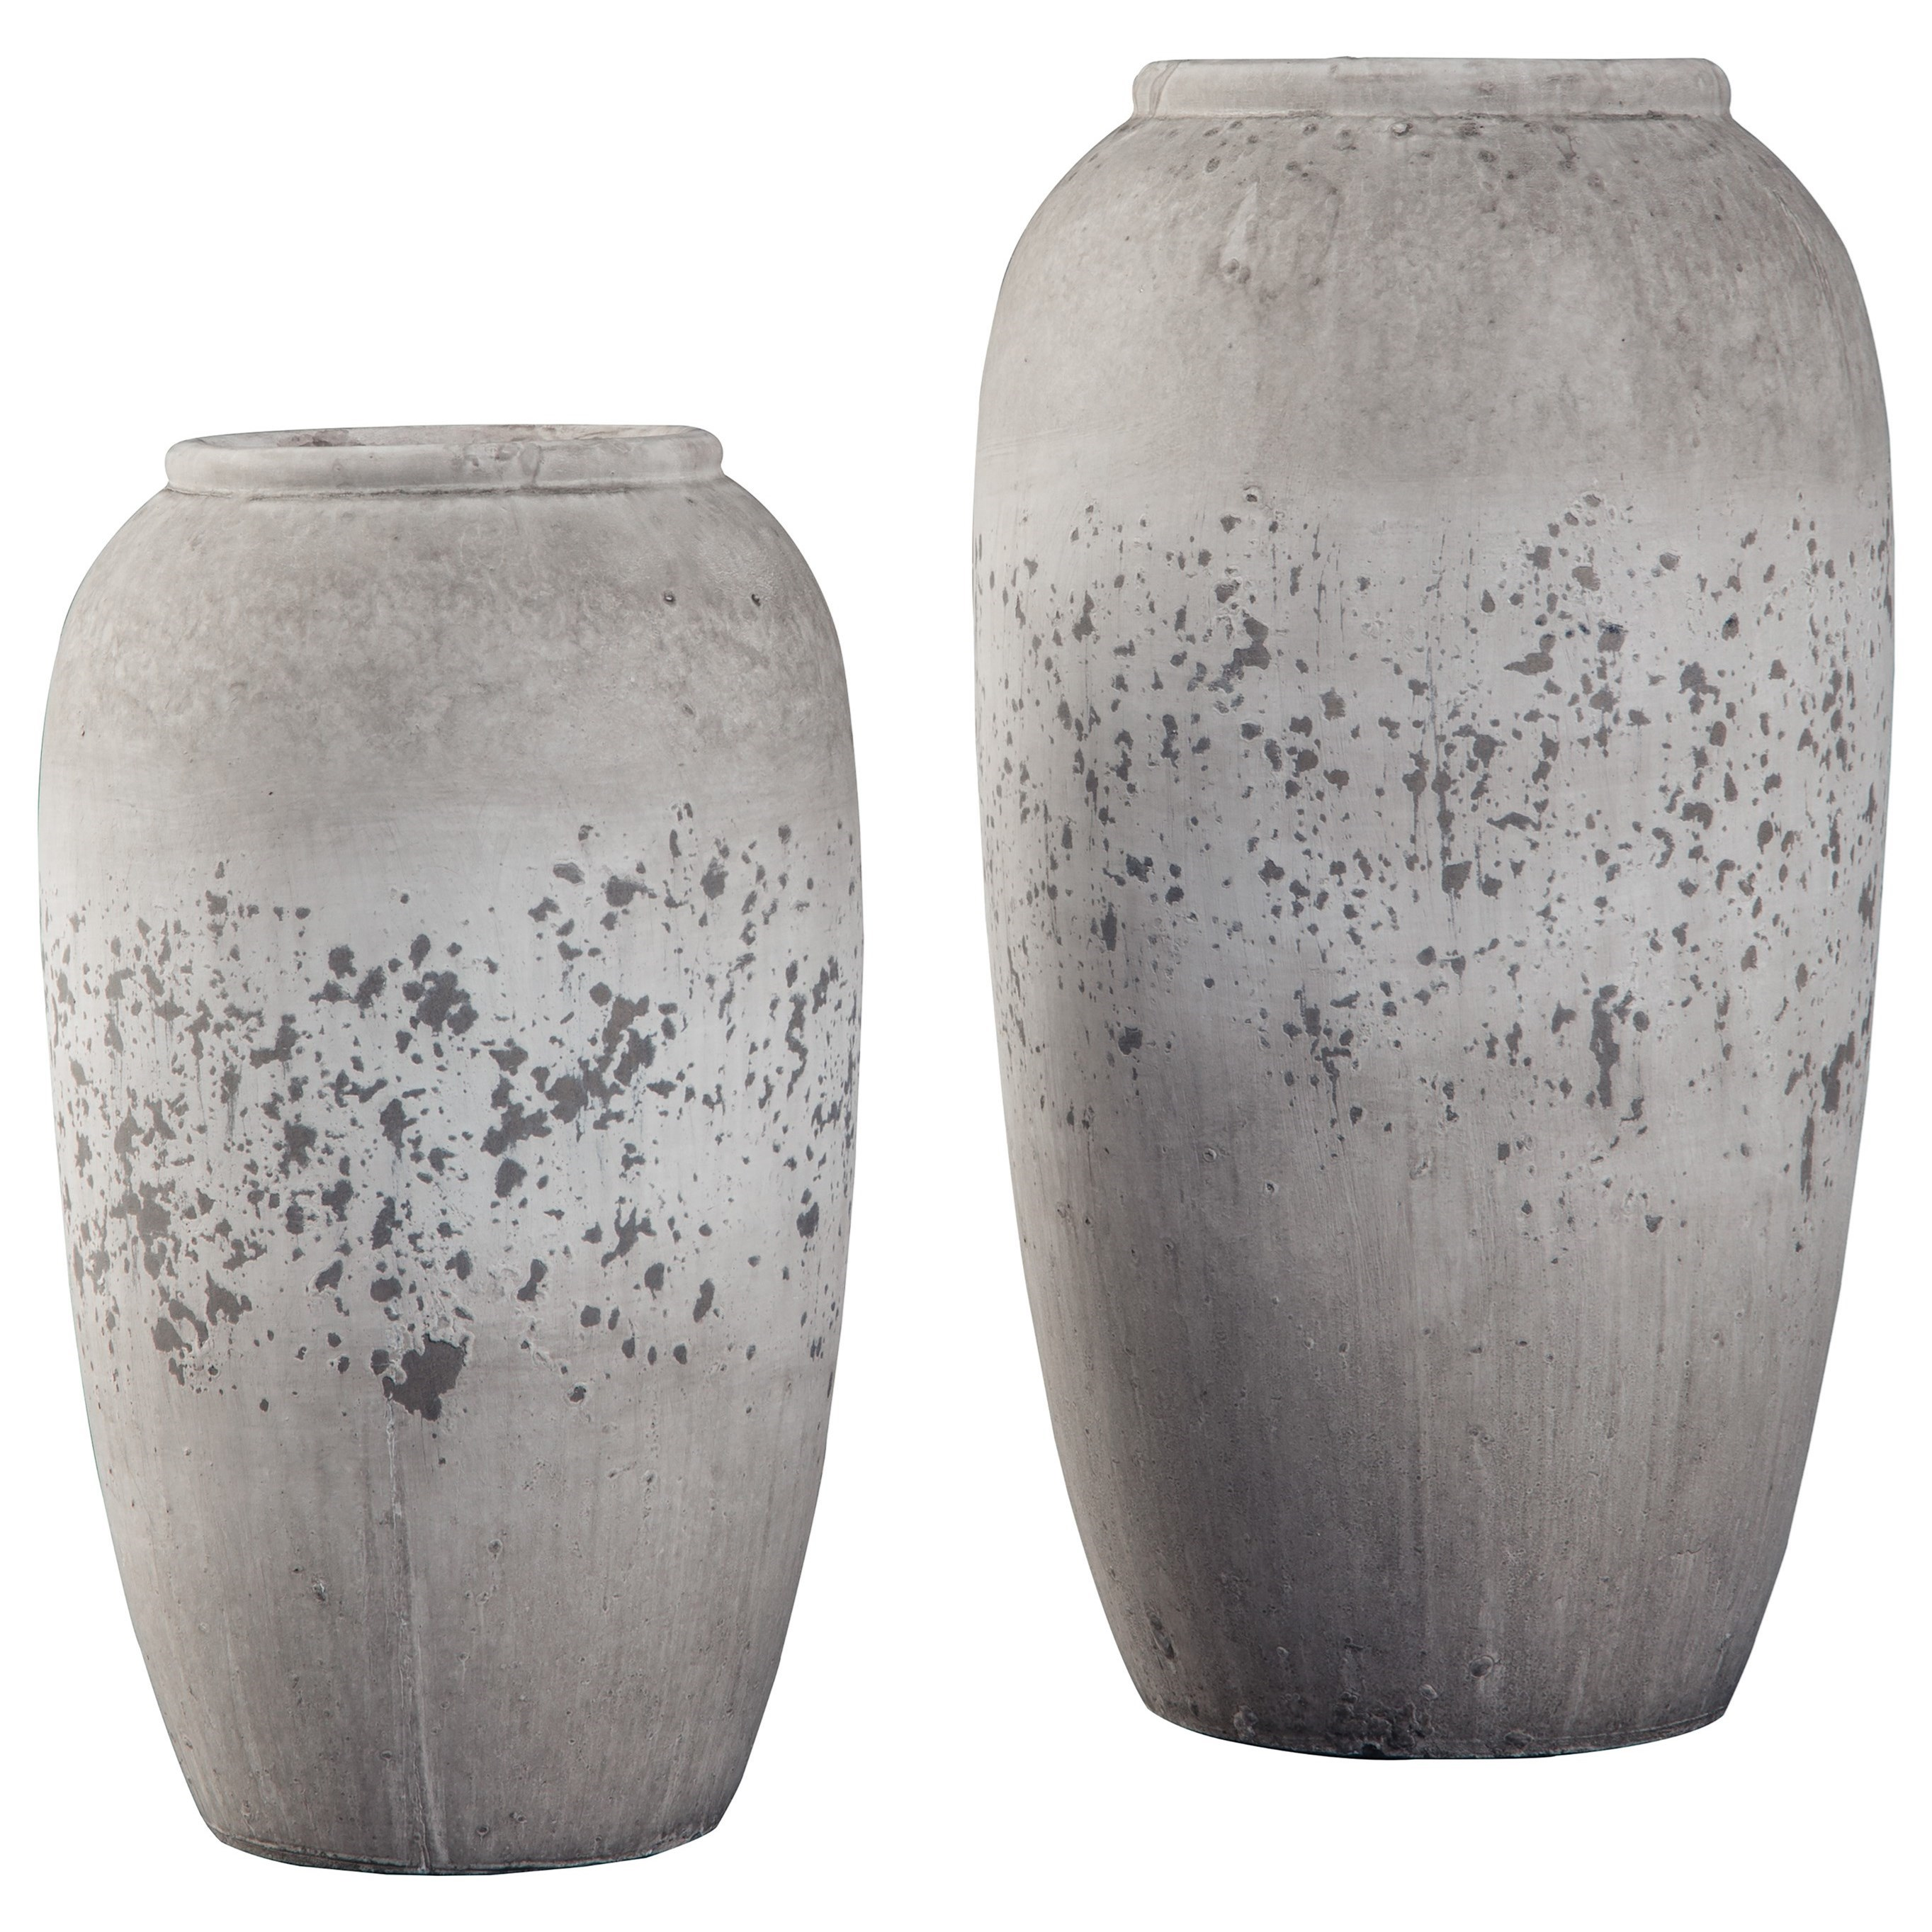 Signature Design by Ashley Accents Dimitra Brown/Cream Vase Set - Item Number: A2000110